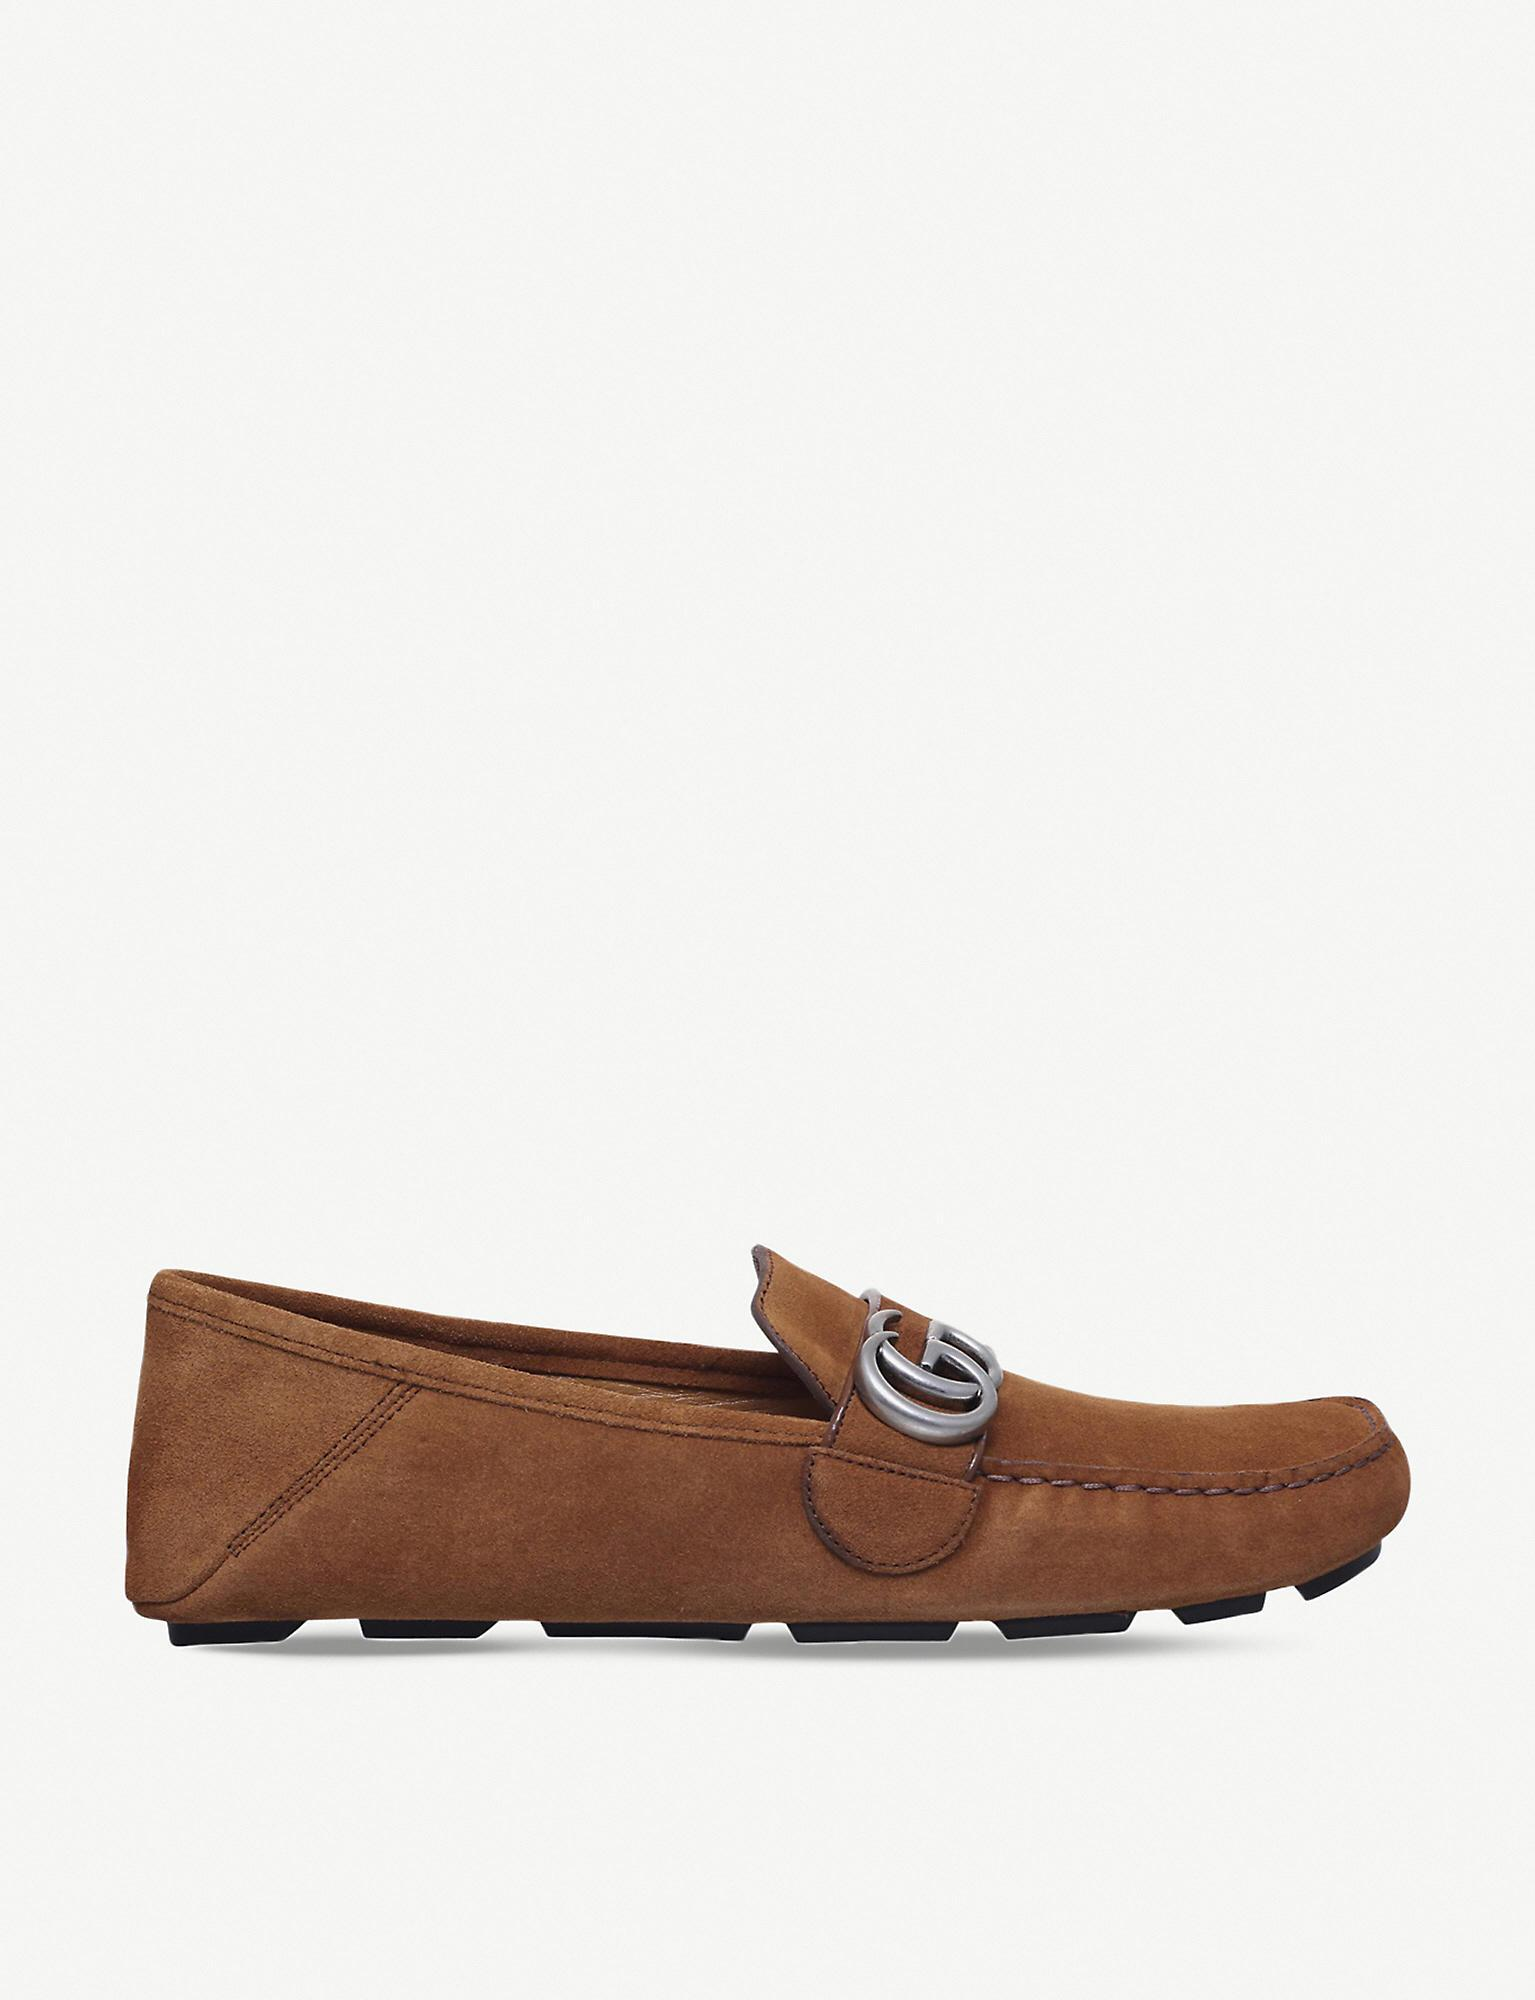 983a5c84a2f Lyst - Gucci Noel Suede Driving Shoes in Brown for Men